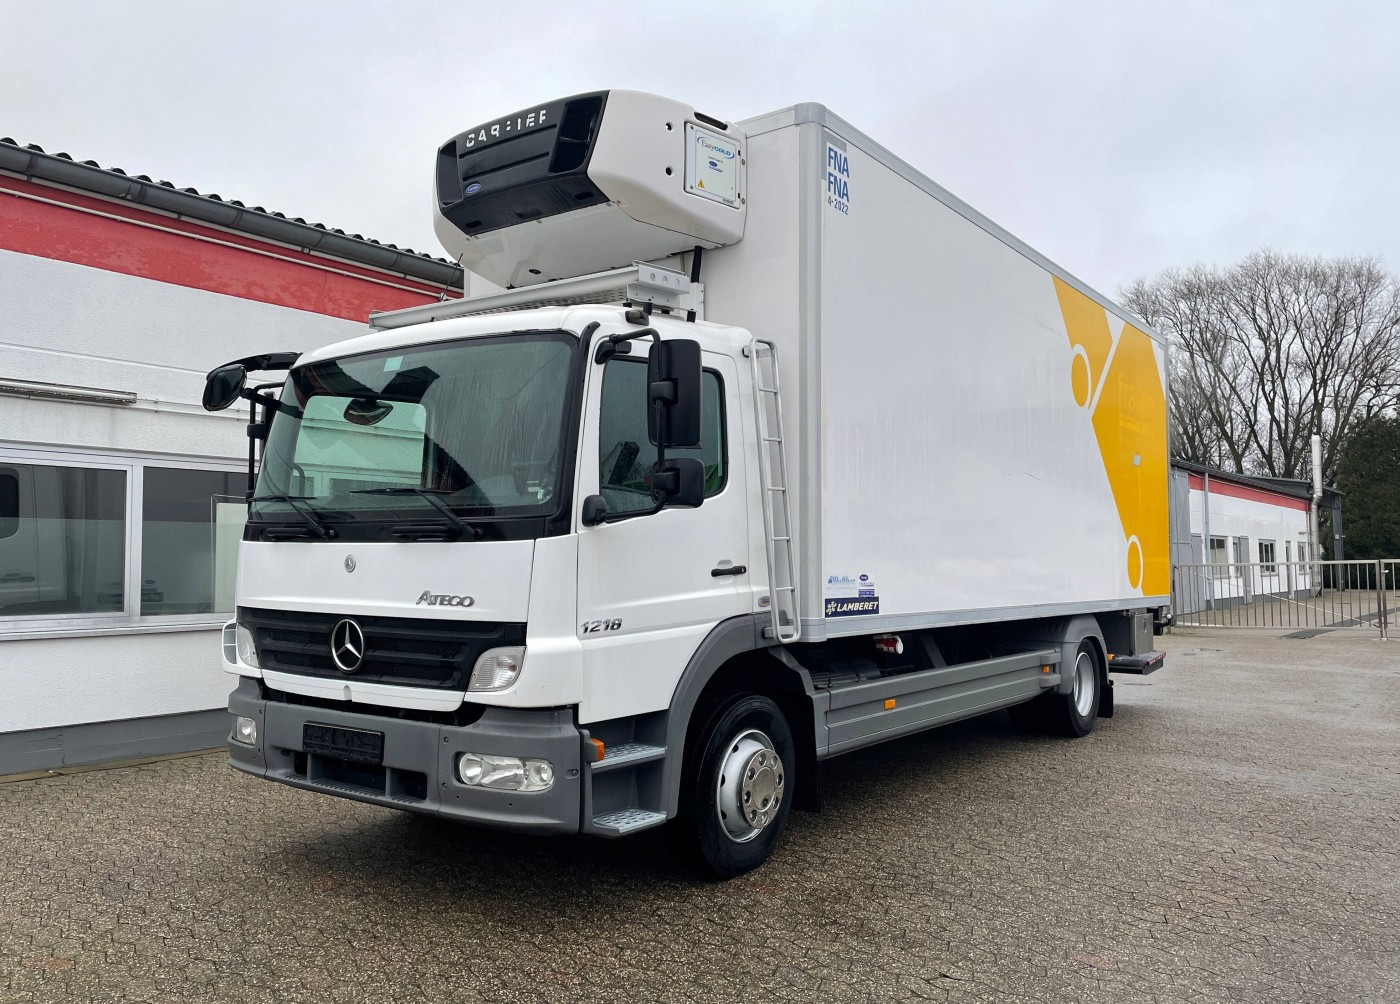 Mercedes-Benz - Atego 1218 Tiefkühlkoffer Carrier Supra 850MT 2 Temperaturen Ladebordwand ATP 04/2022